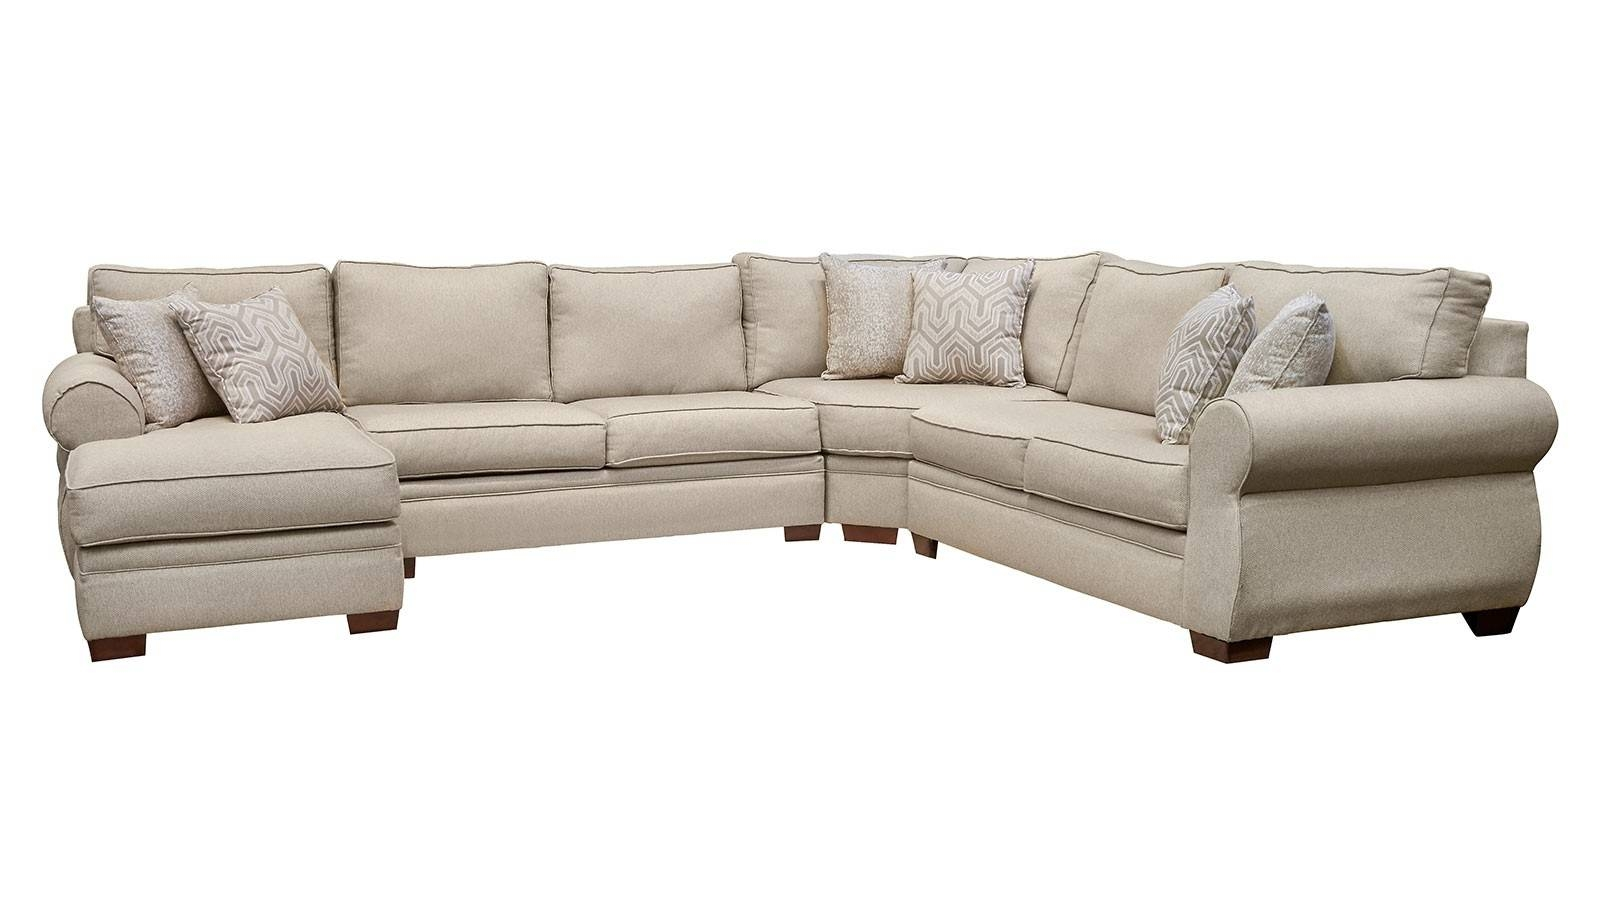 Living Room Sectionals | Gallery Furniture throughout Chenille and Leather Sectional Sofa (Image 12 of 30)